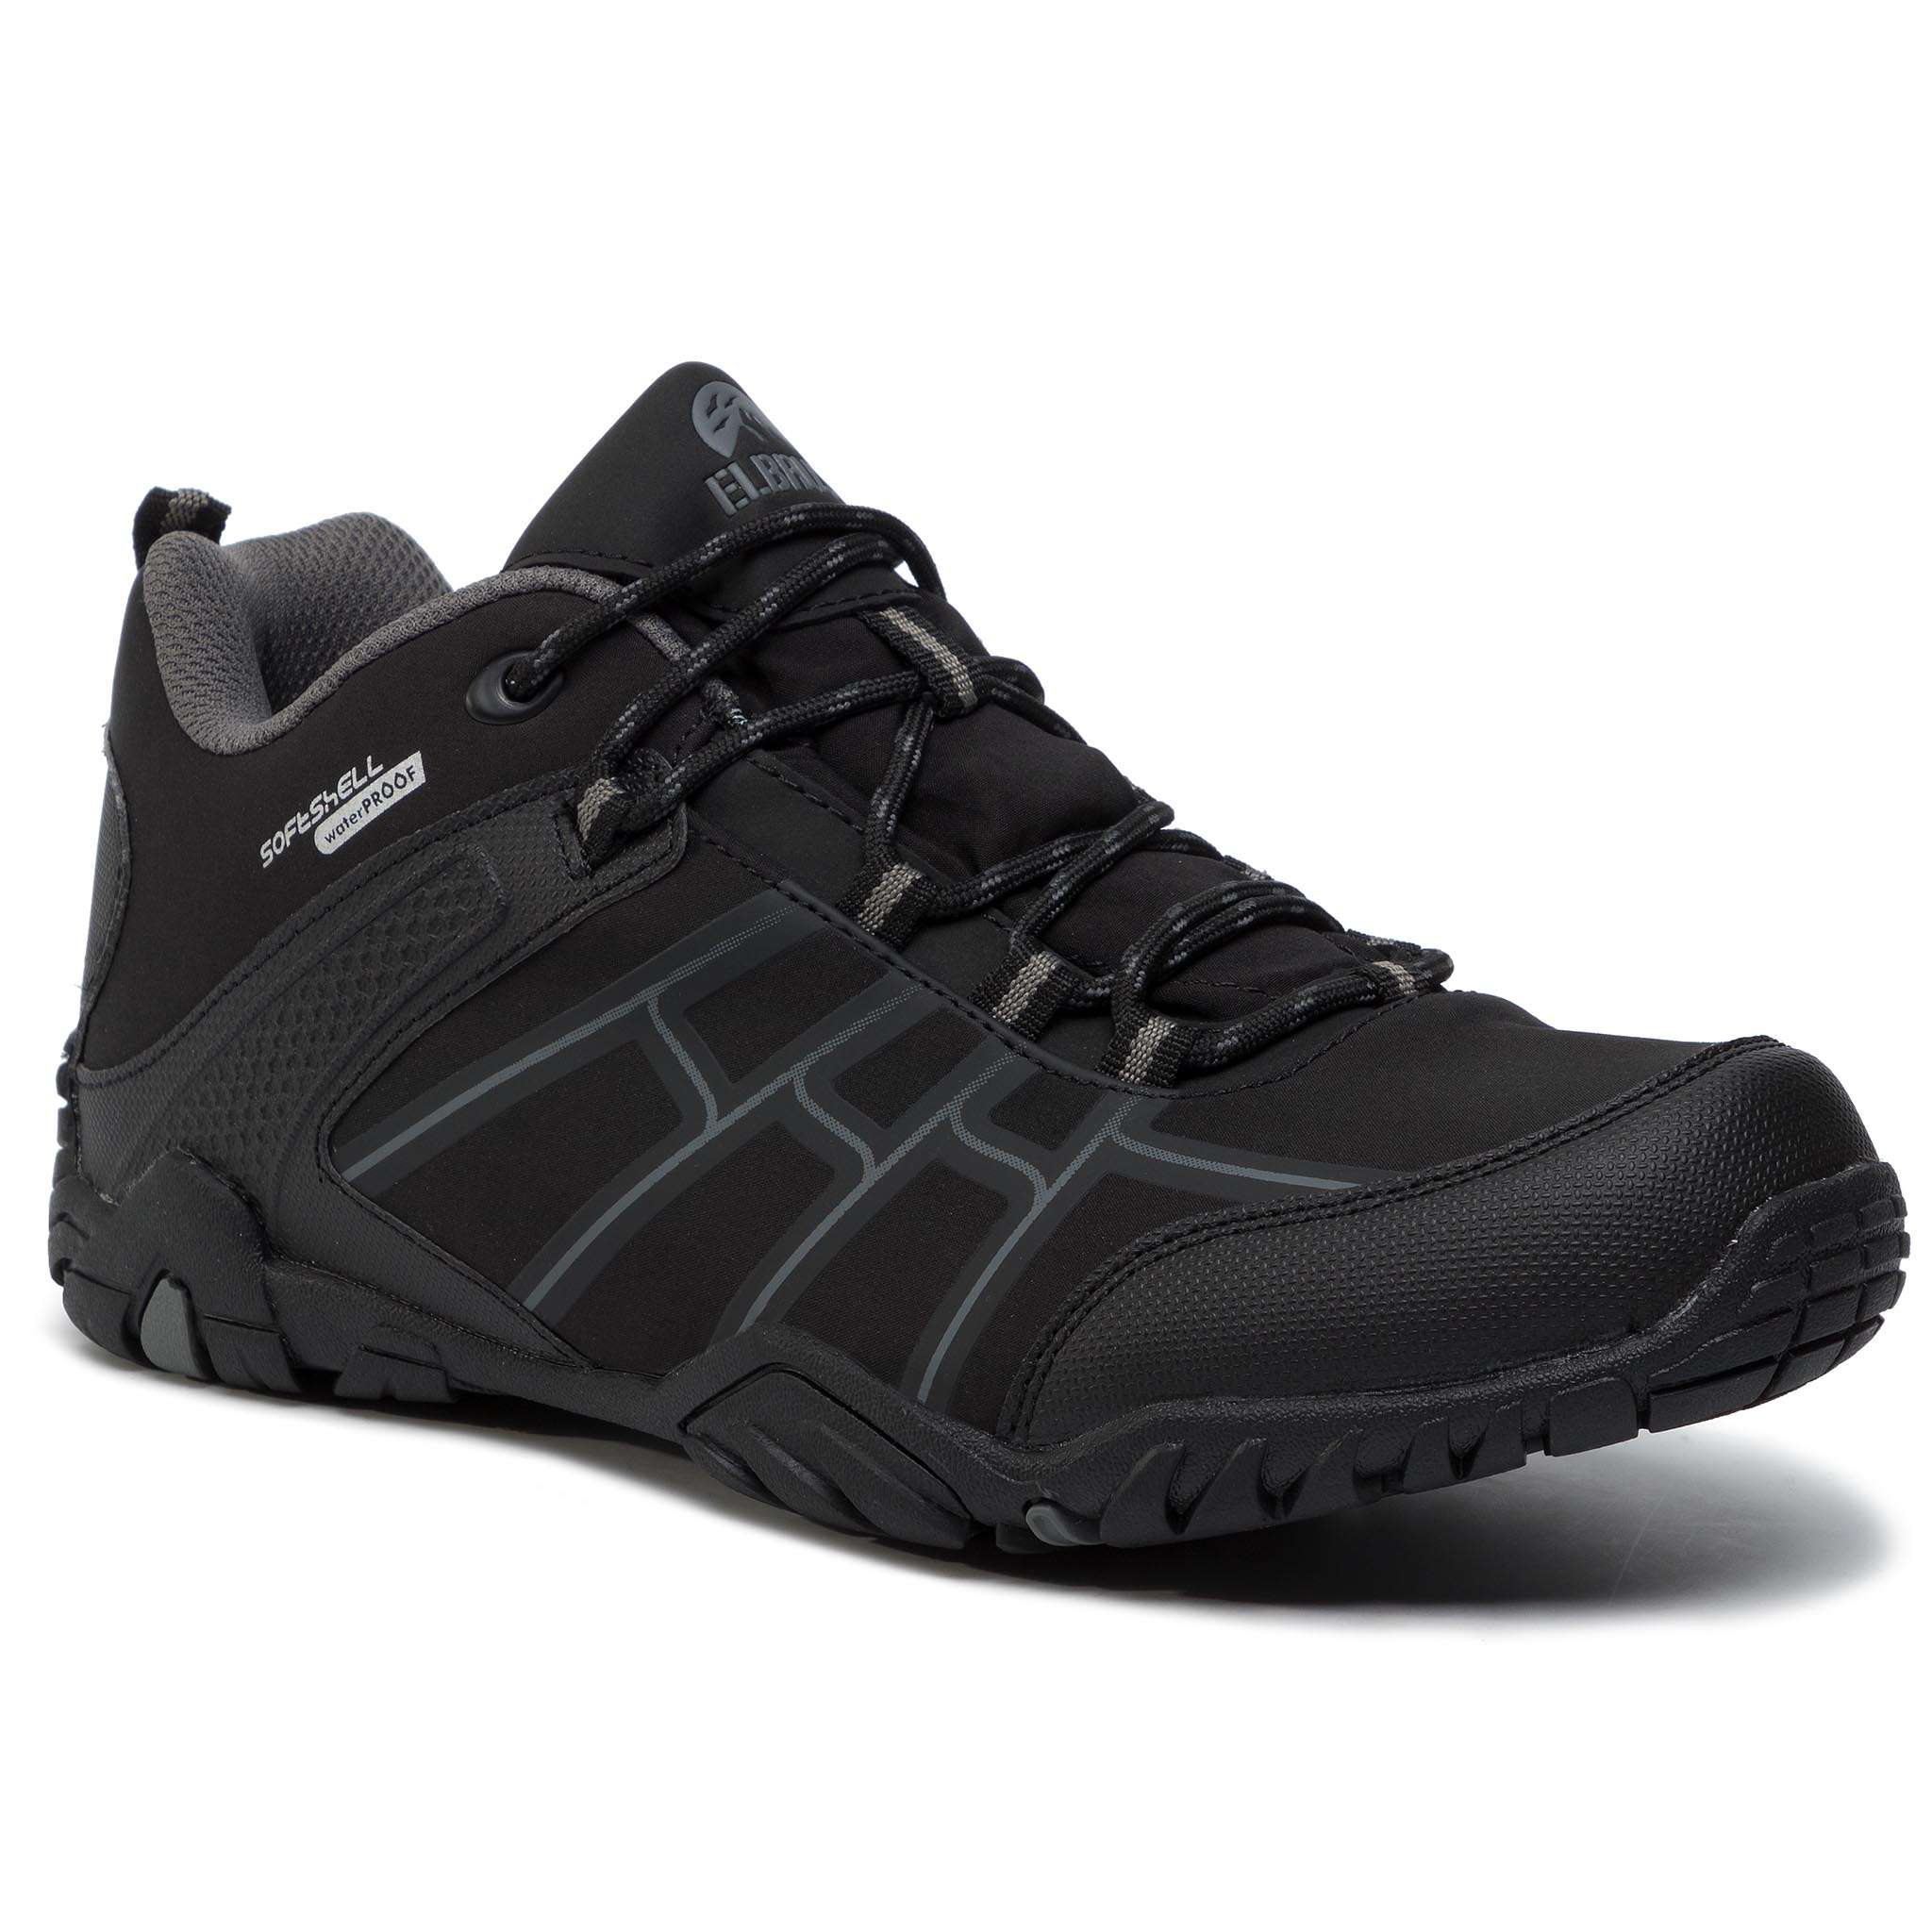 Trekkings Elbrus - Rimley Wp Black/Dark Grey imagine epantofi.ro 2021